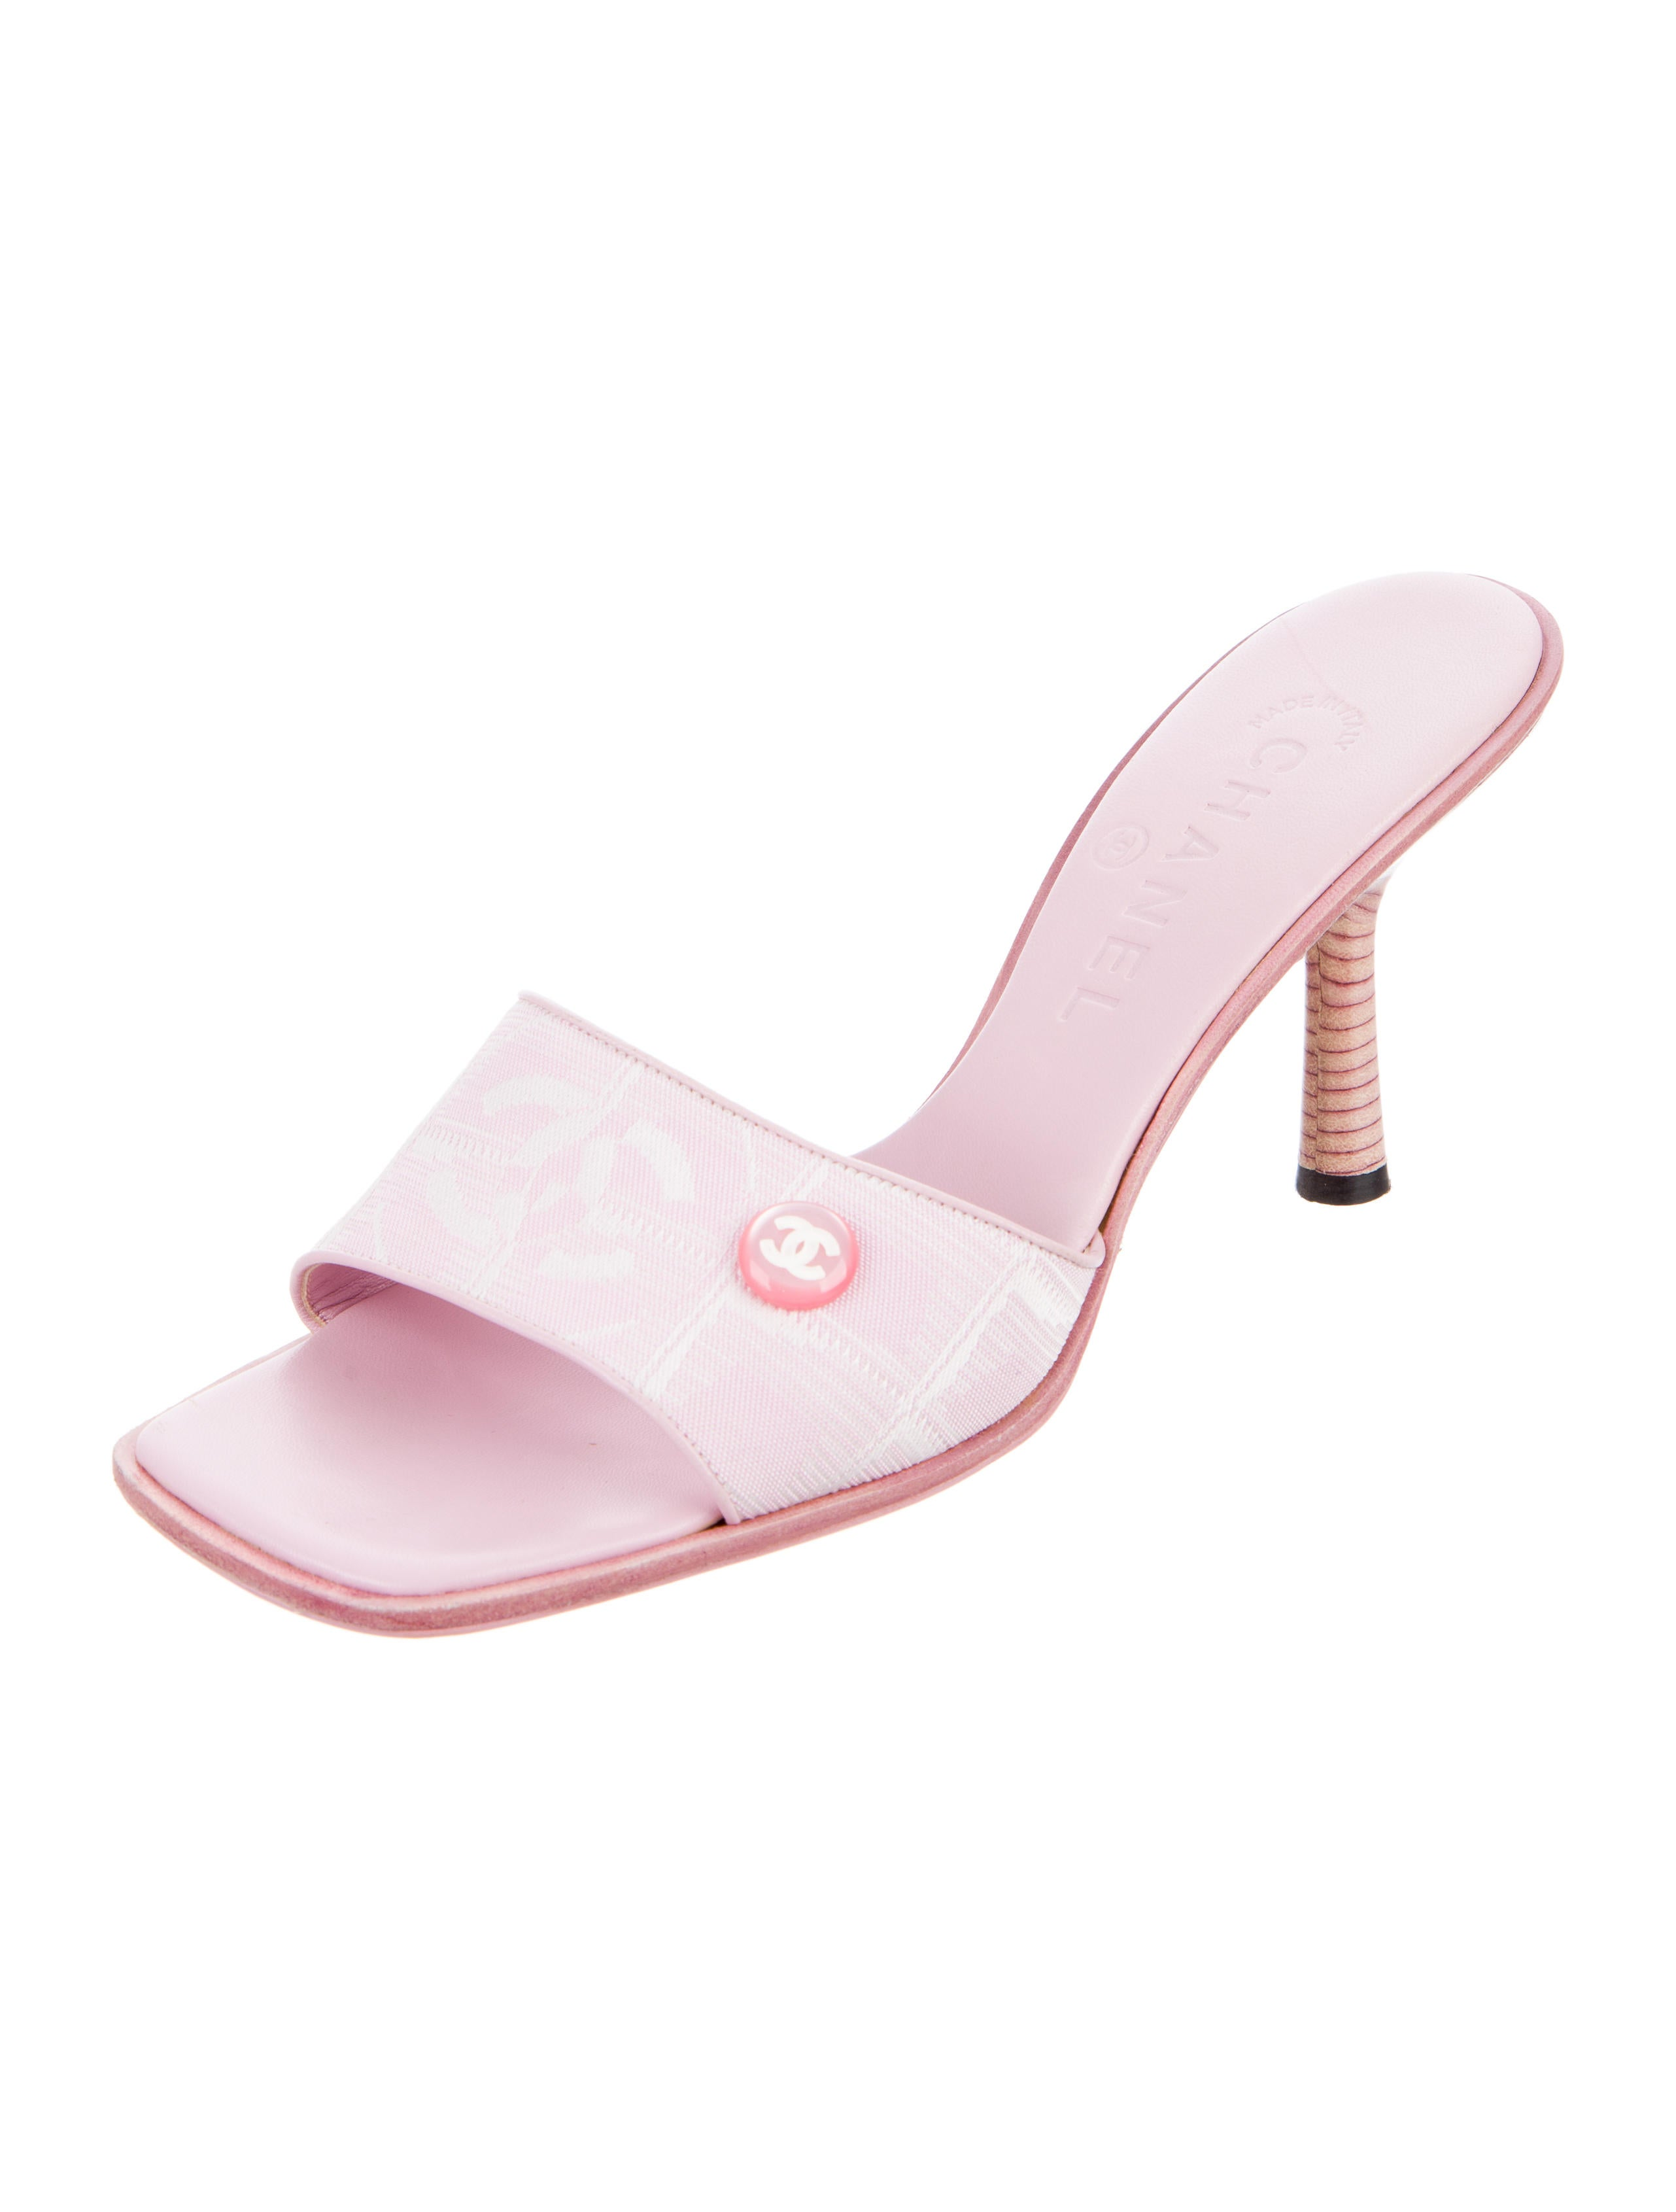 chanel canvas slide sandals shoes cha164684 the realreal